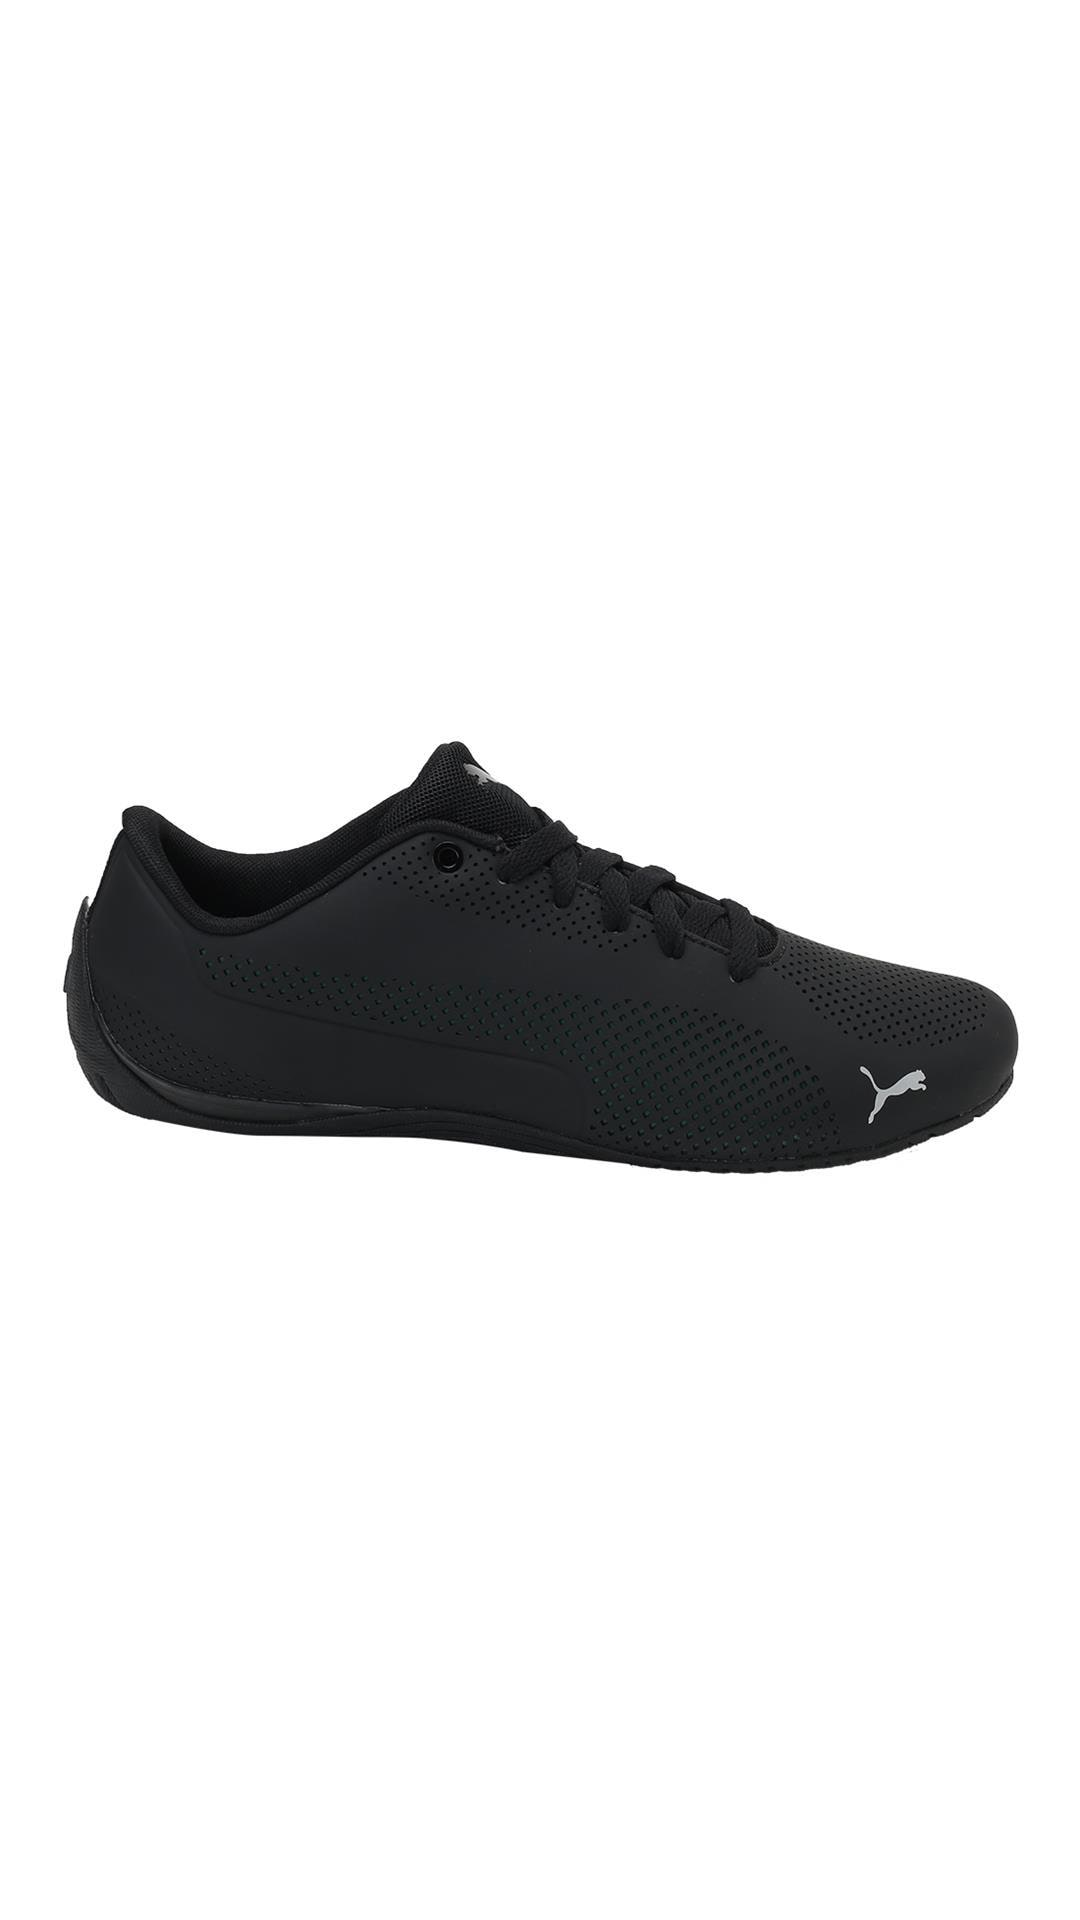 b91e31b2f0a Buy Puma Unisex Drift Cat Ultra Reflective Black Sneakers Shoes Online at  Low Prices in India - Paytmmall.com